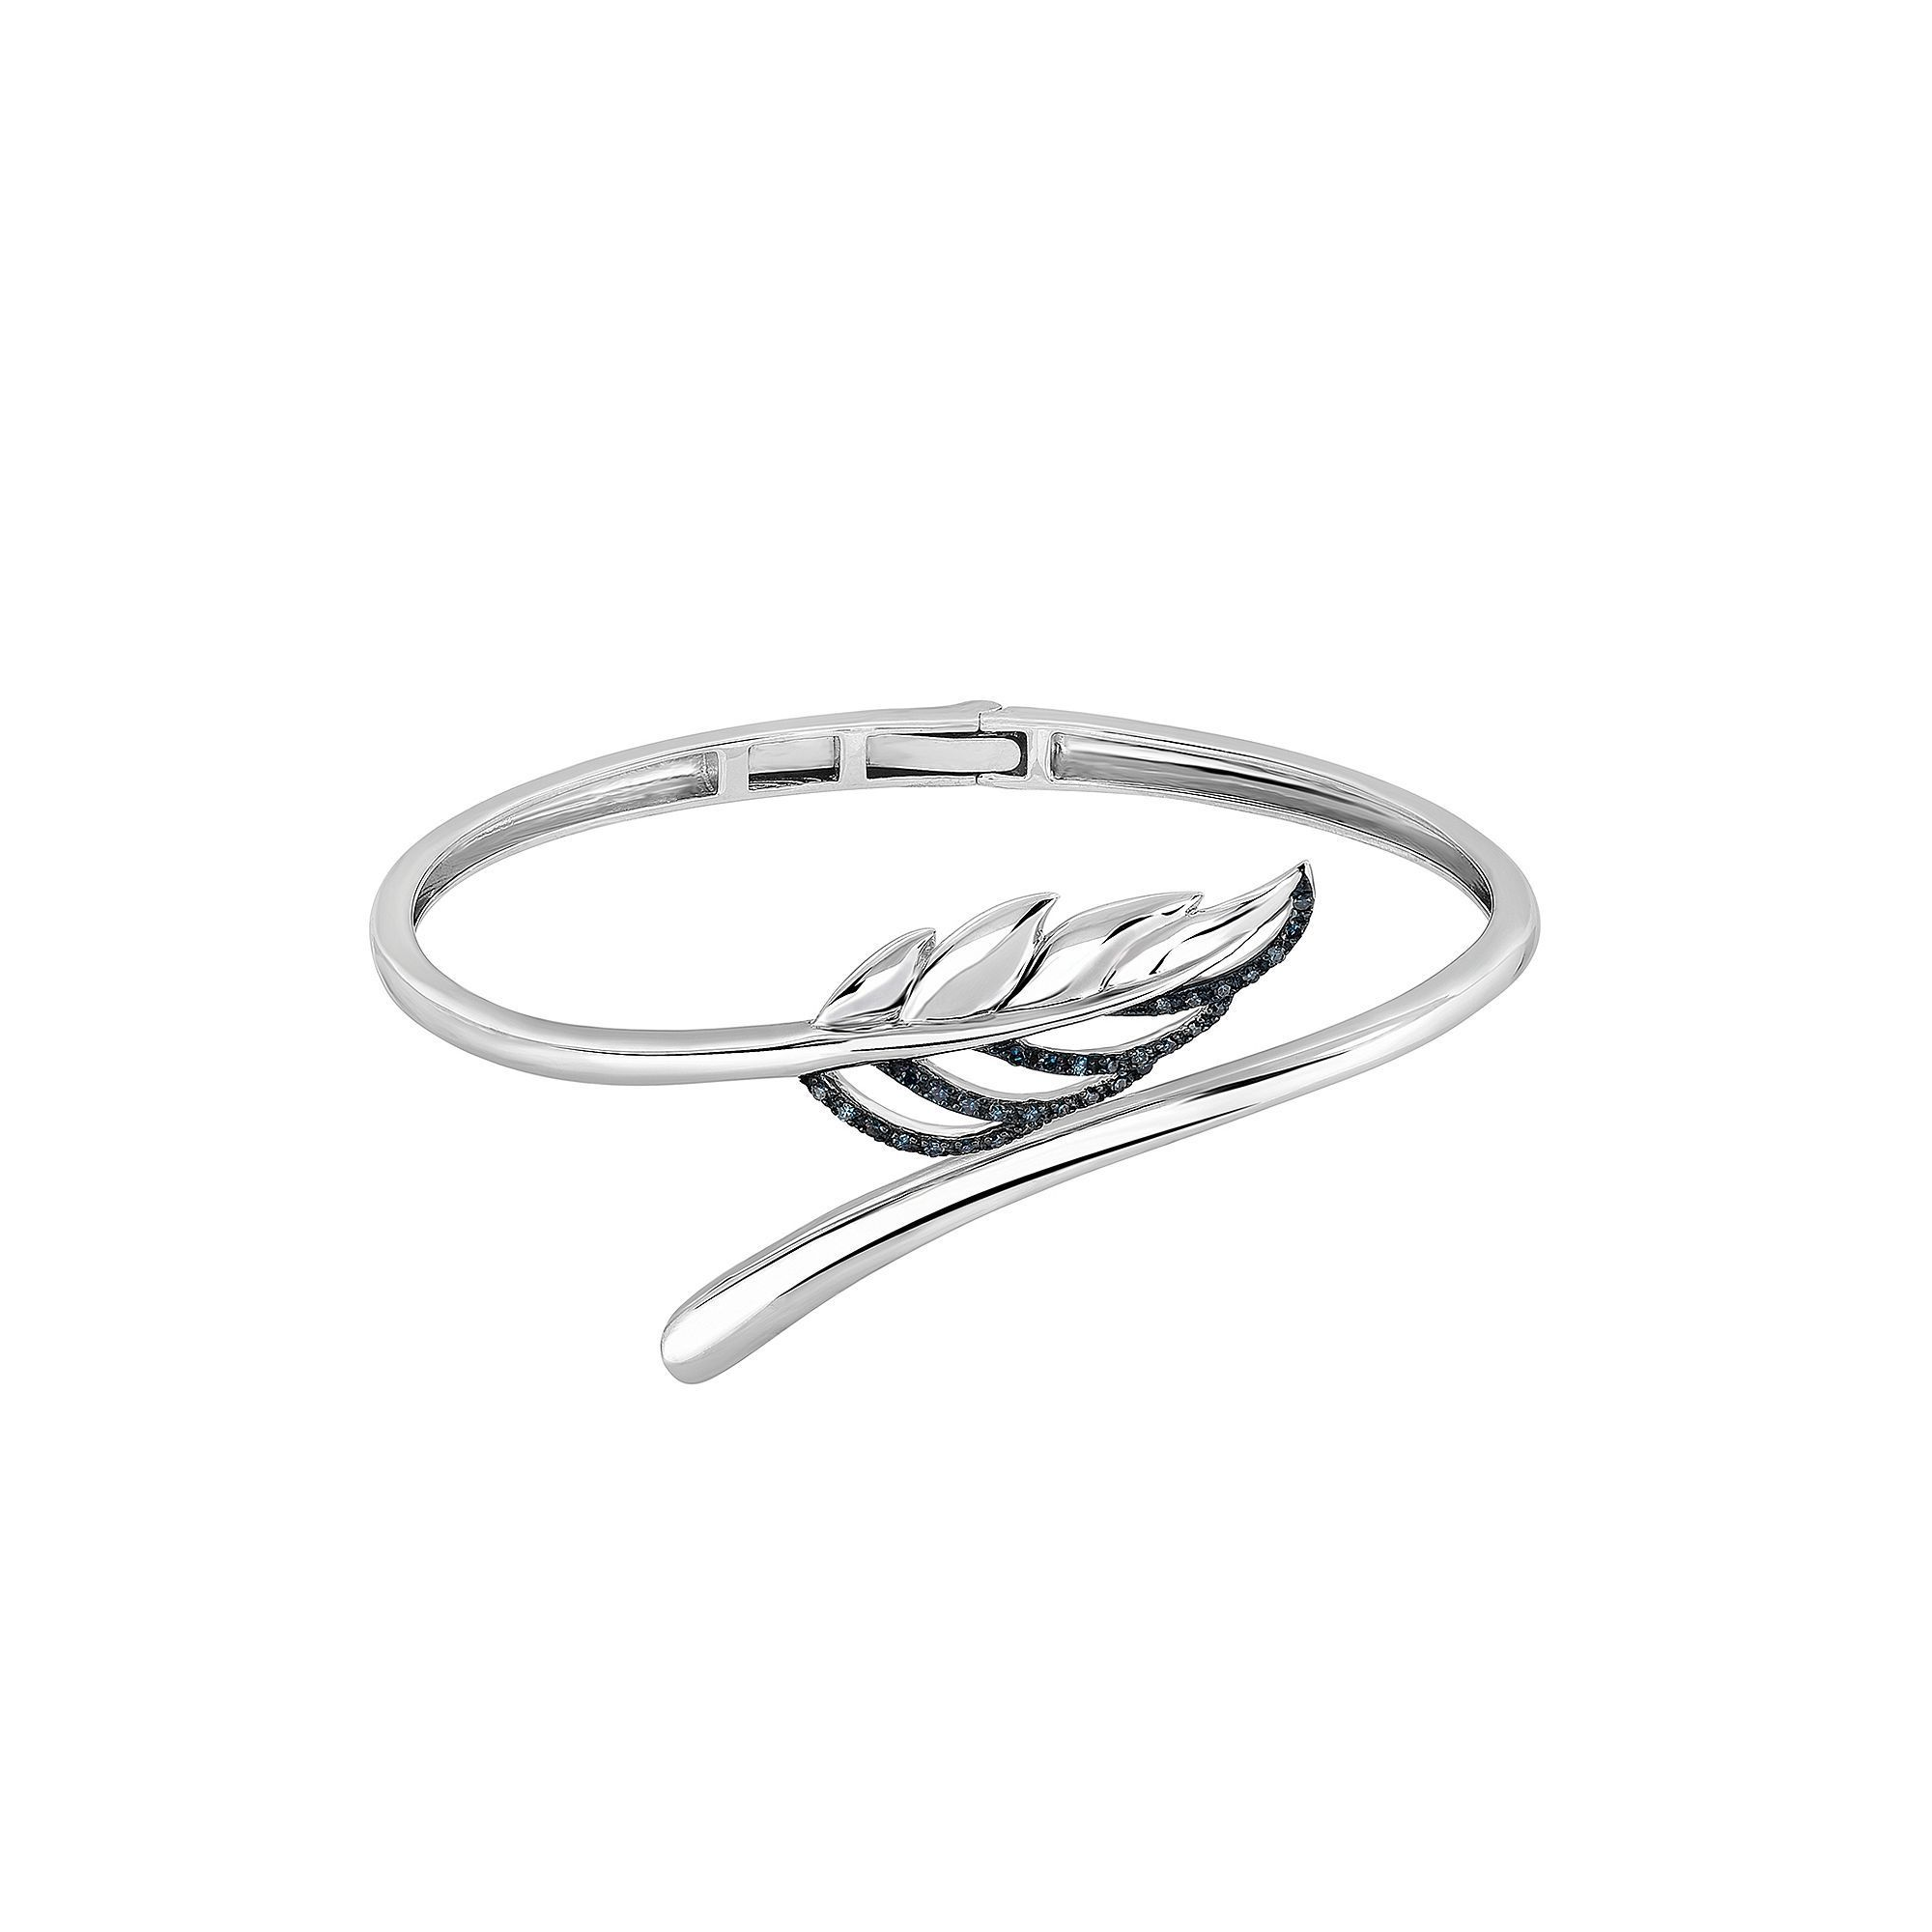 engraved great bangles front bracelet sterling plain d bangle the i frog silver id bracelets product